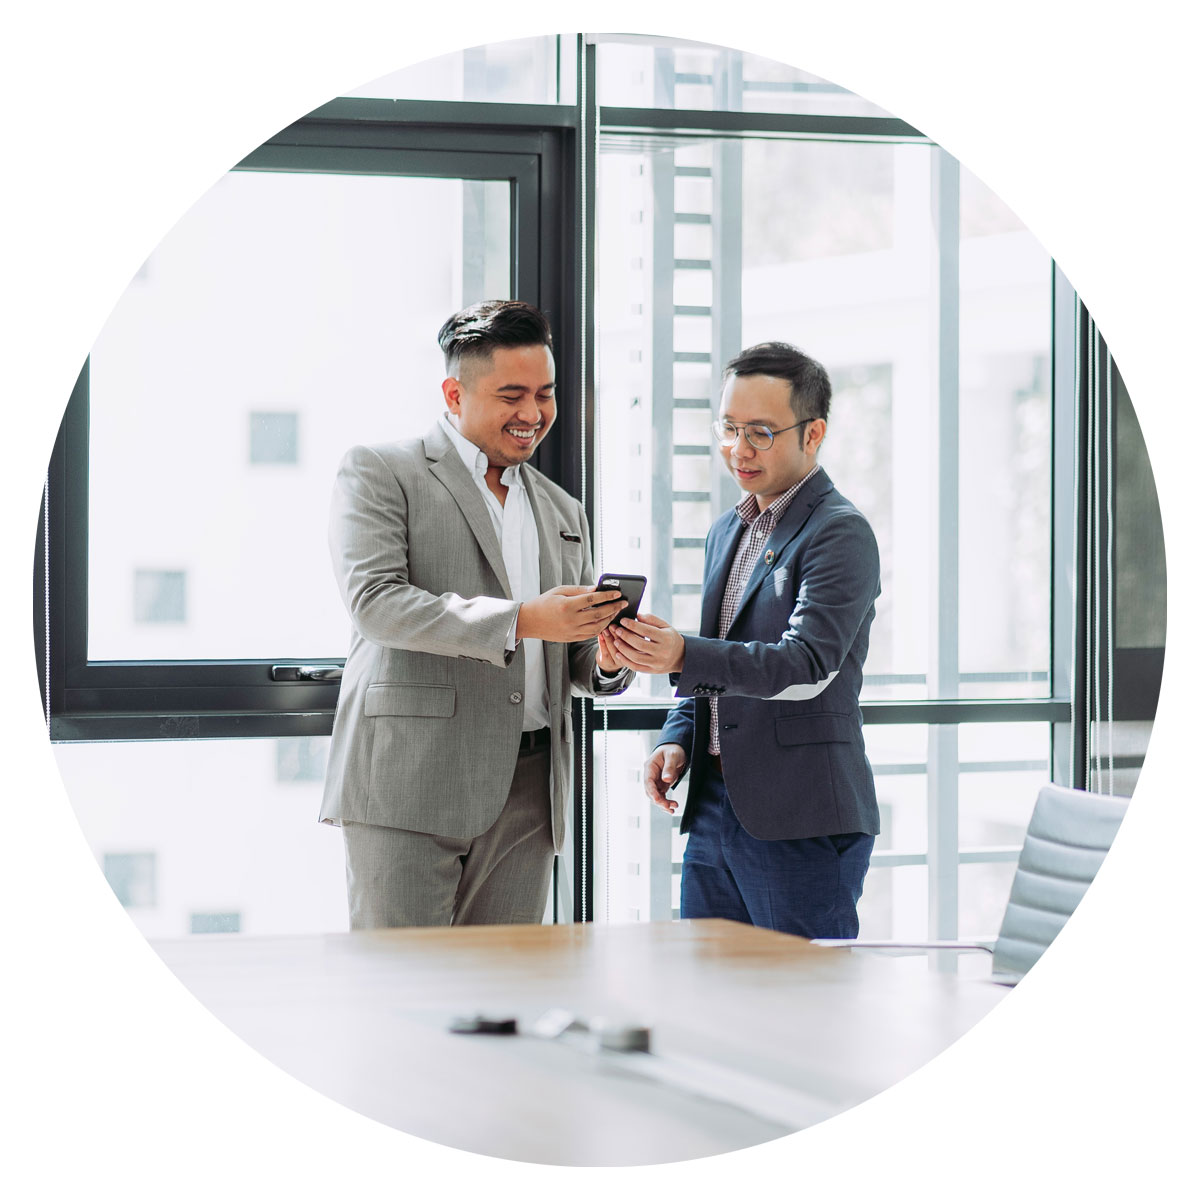 image of two men discussing